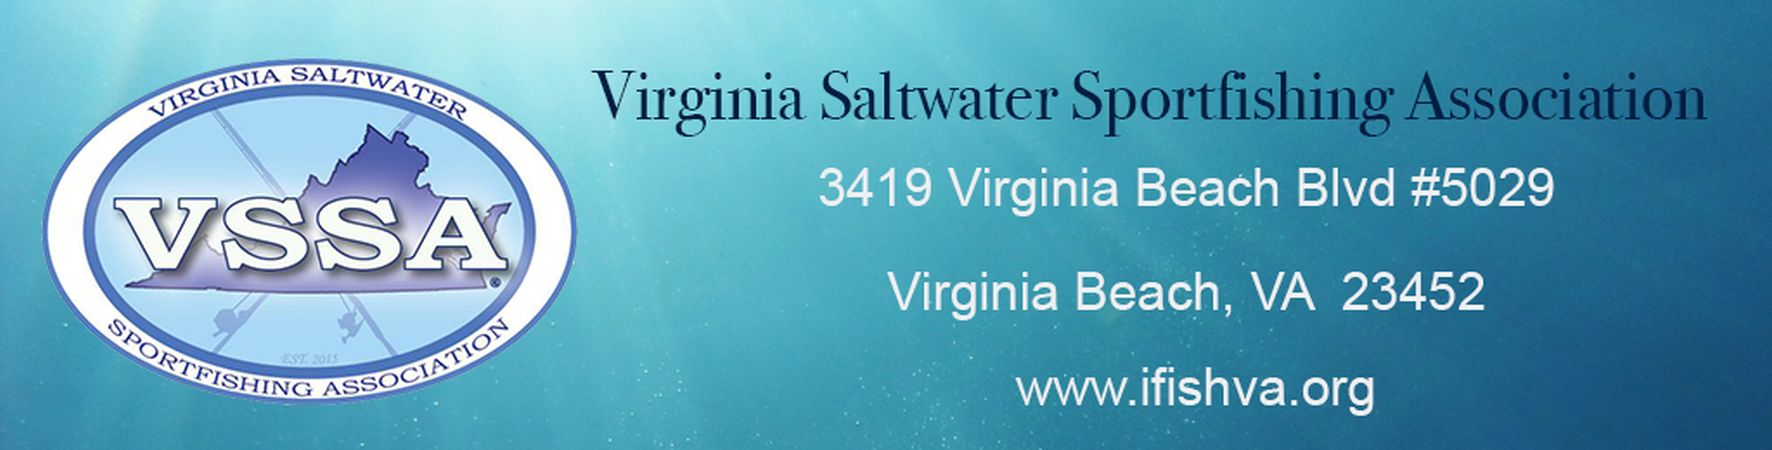 Virginia Saltwater Sportfishing Association